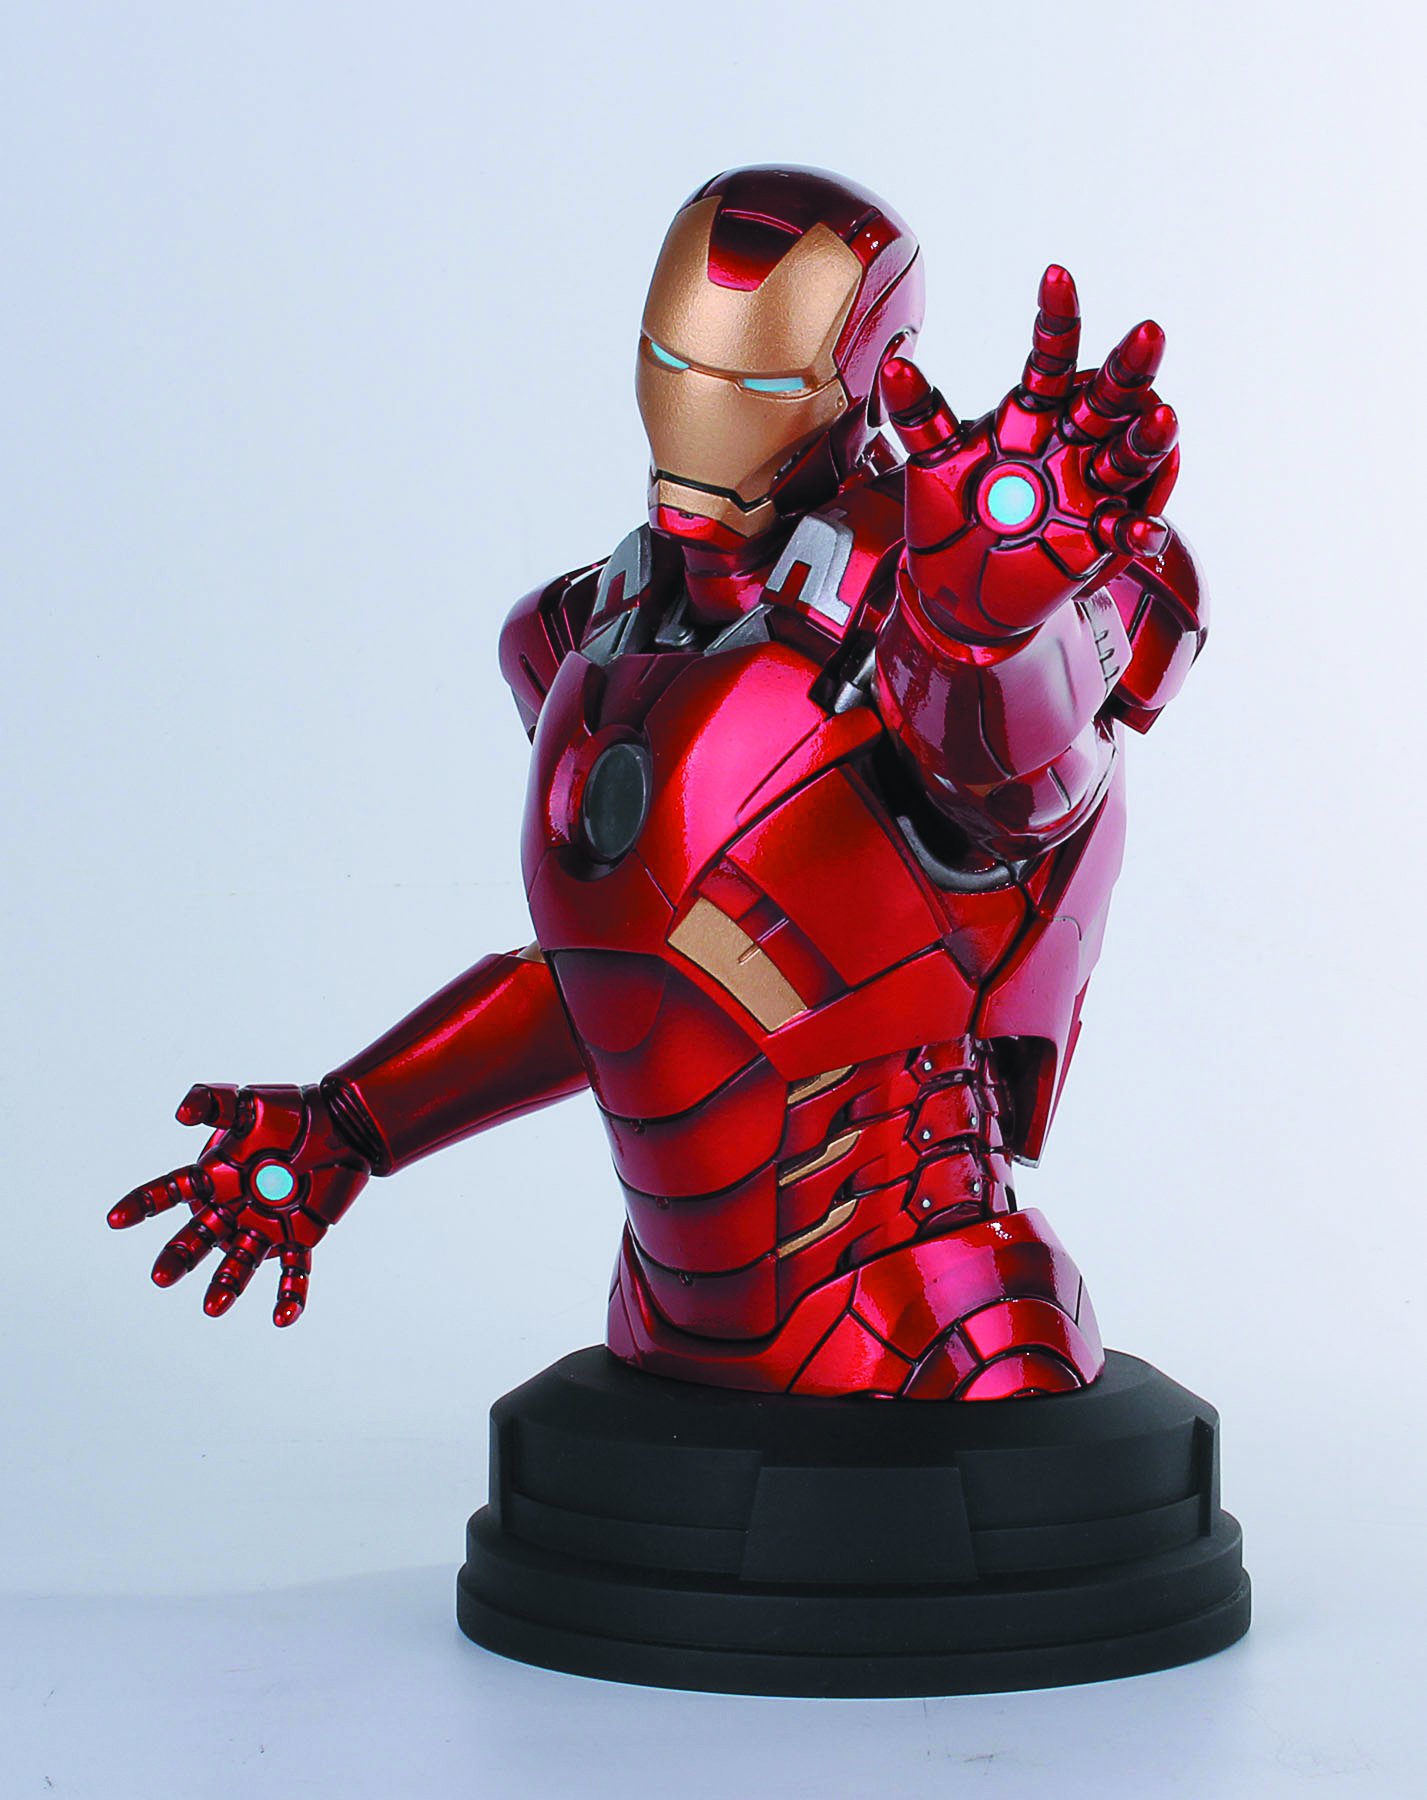 GENTLE GIANT AVENGERS IRON MAN DLX MINI-BUST